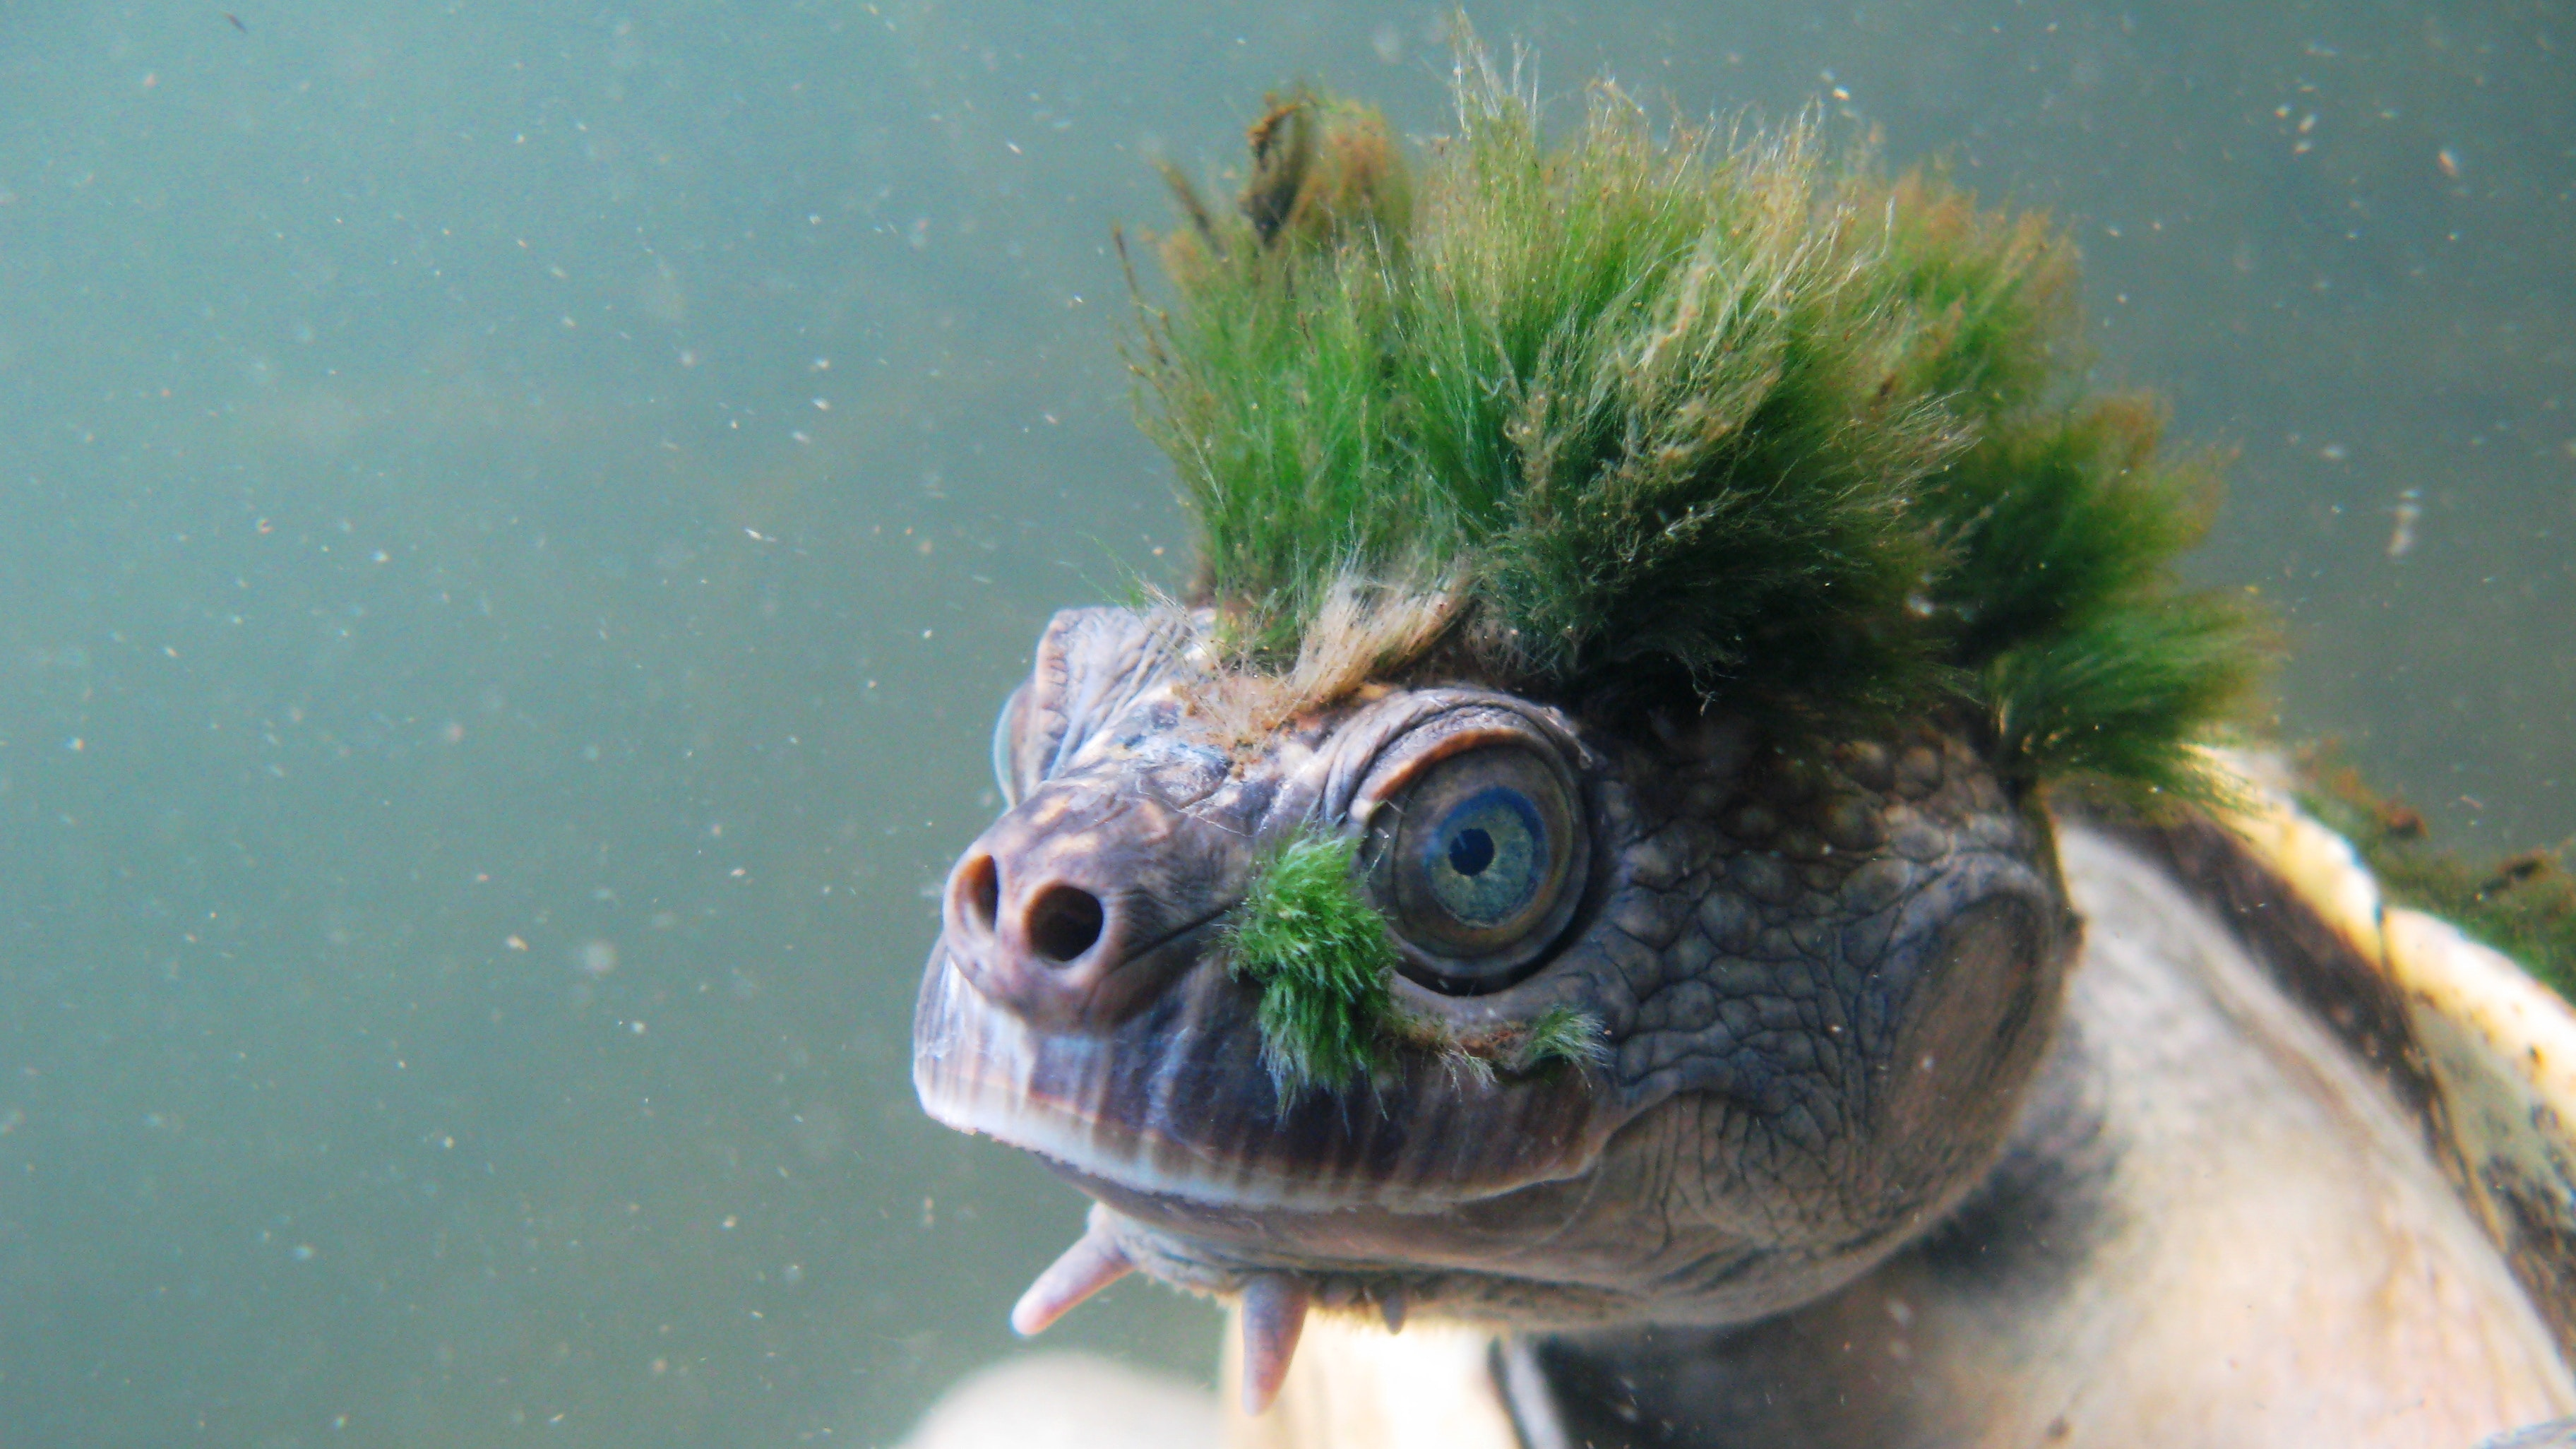 'Punk' turtle that breathes through its genitals added to endangered list